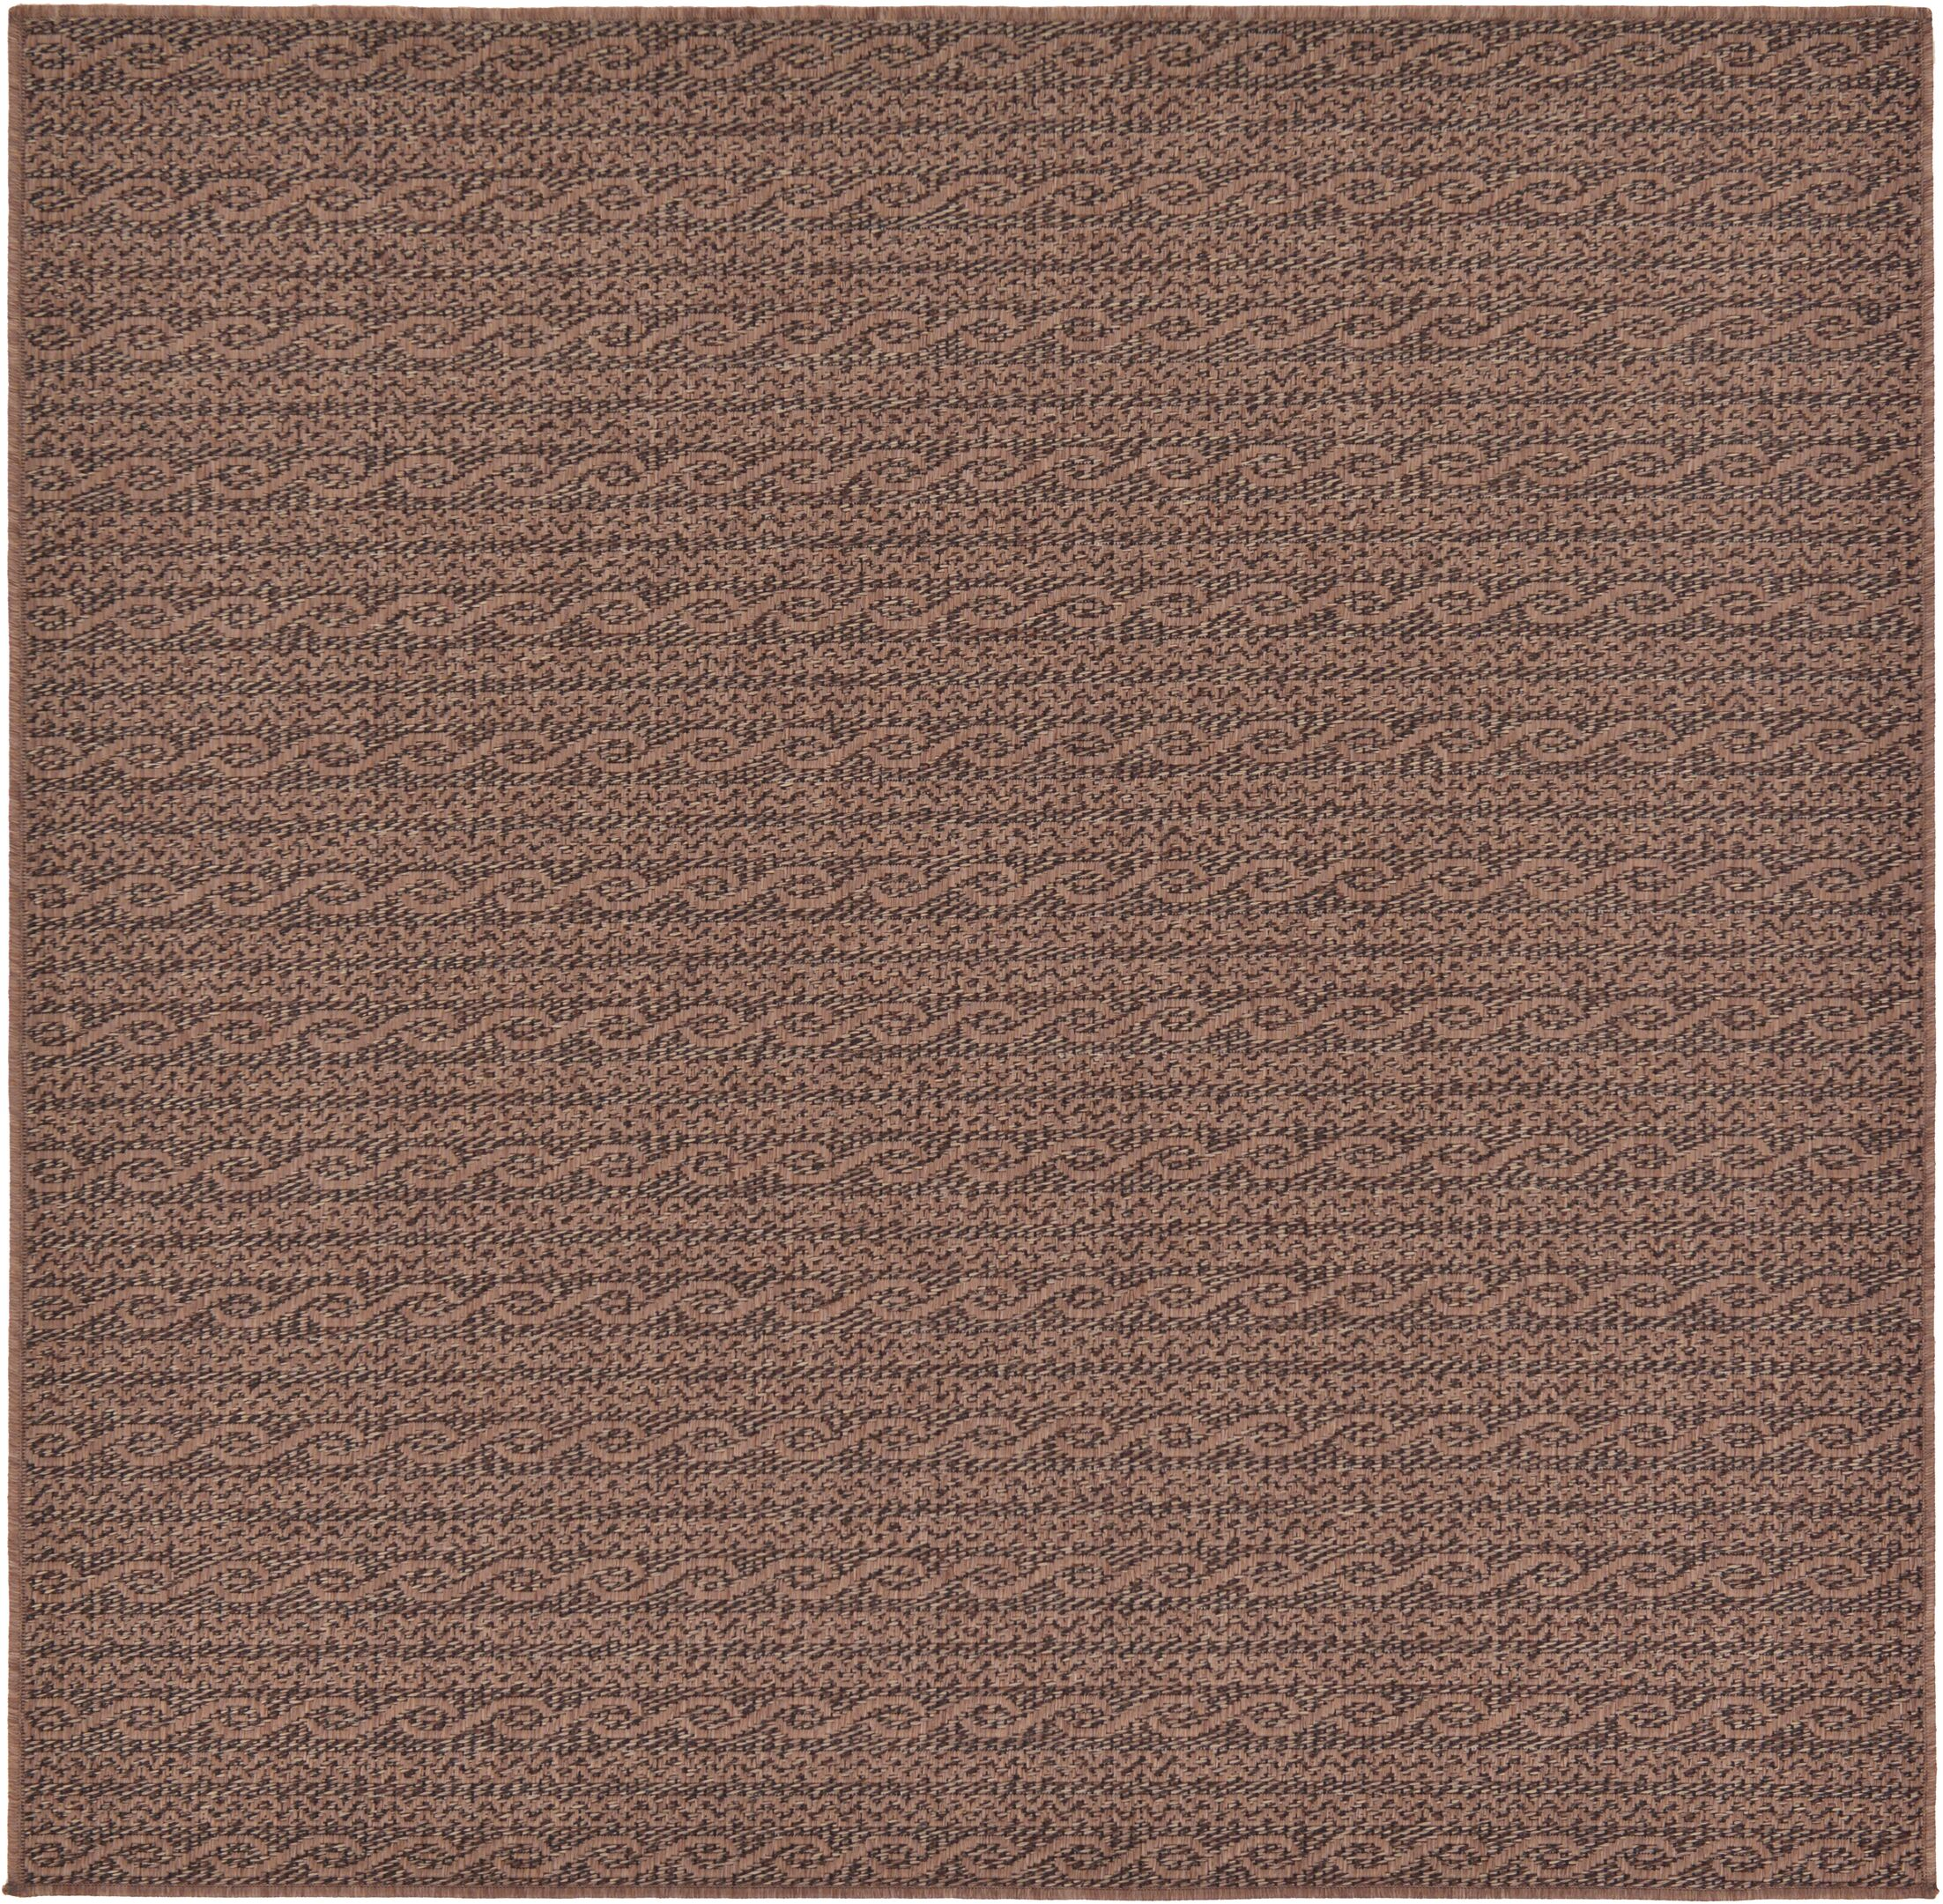 Robbinston Brown Outdoor Area Rug Rug Size: Square 6'